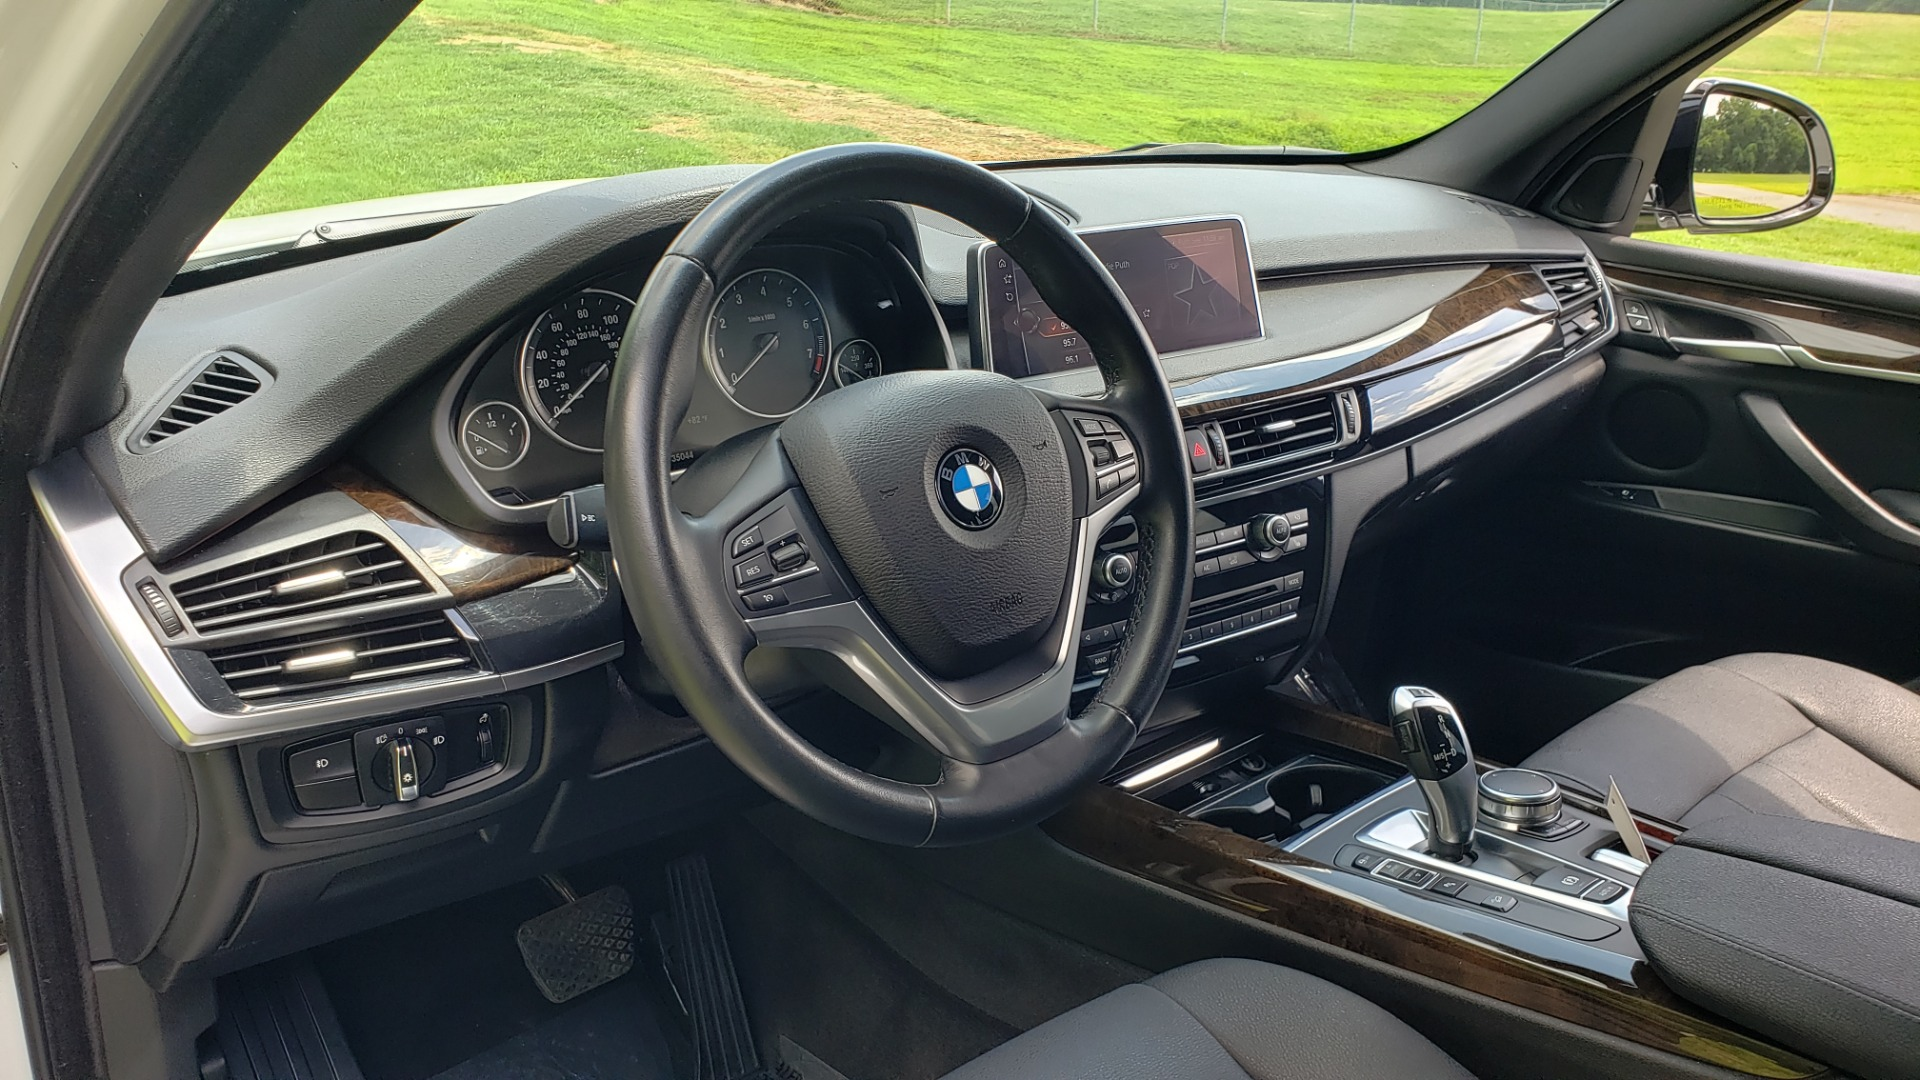 Used 2017 BMW X5 XDRIVE35I / NAV / SUNROOF / RUNNING BOARDS / REARVIEW for sale $33,995 at Formula Imports in Charlotte NC 28227 39